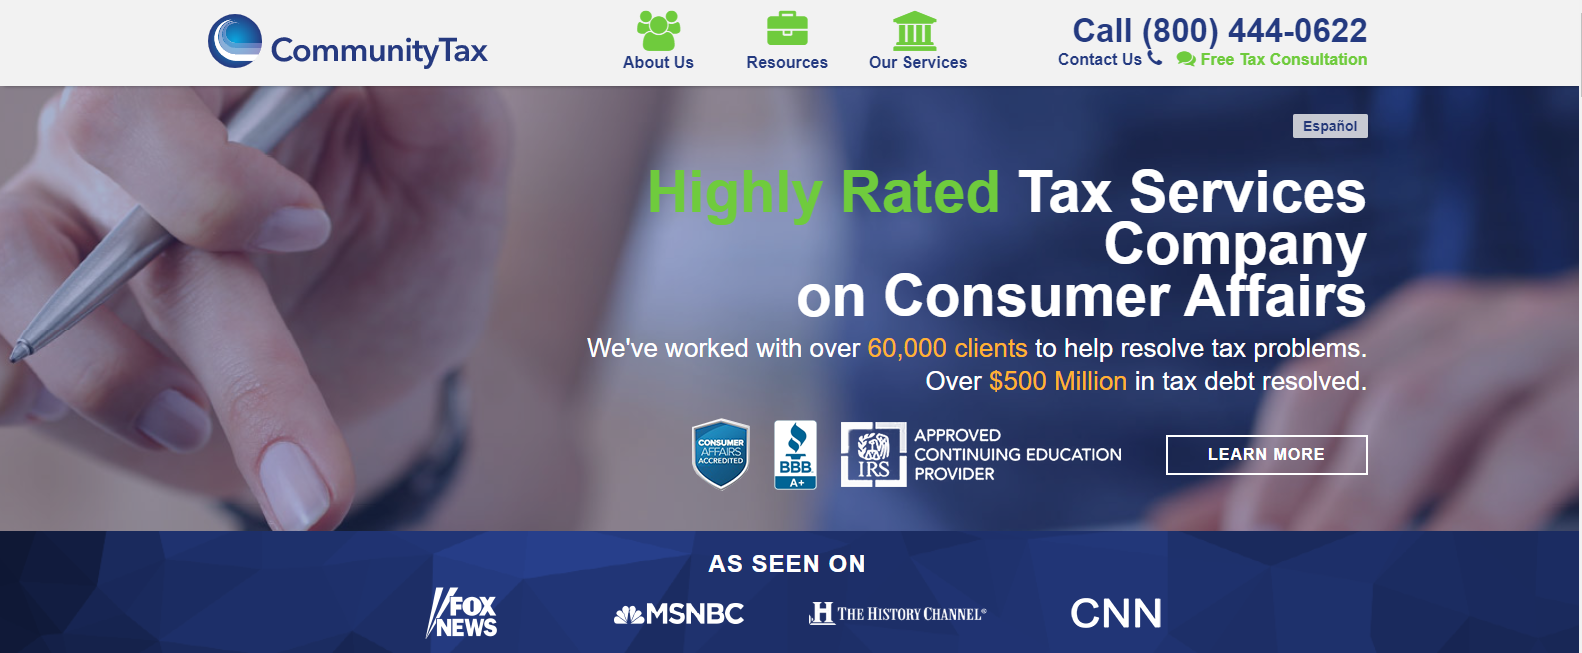 community tax home page